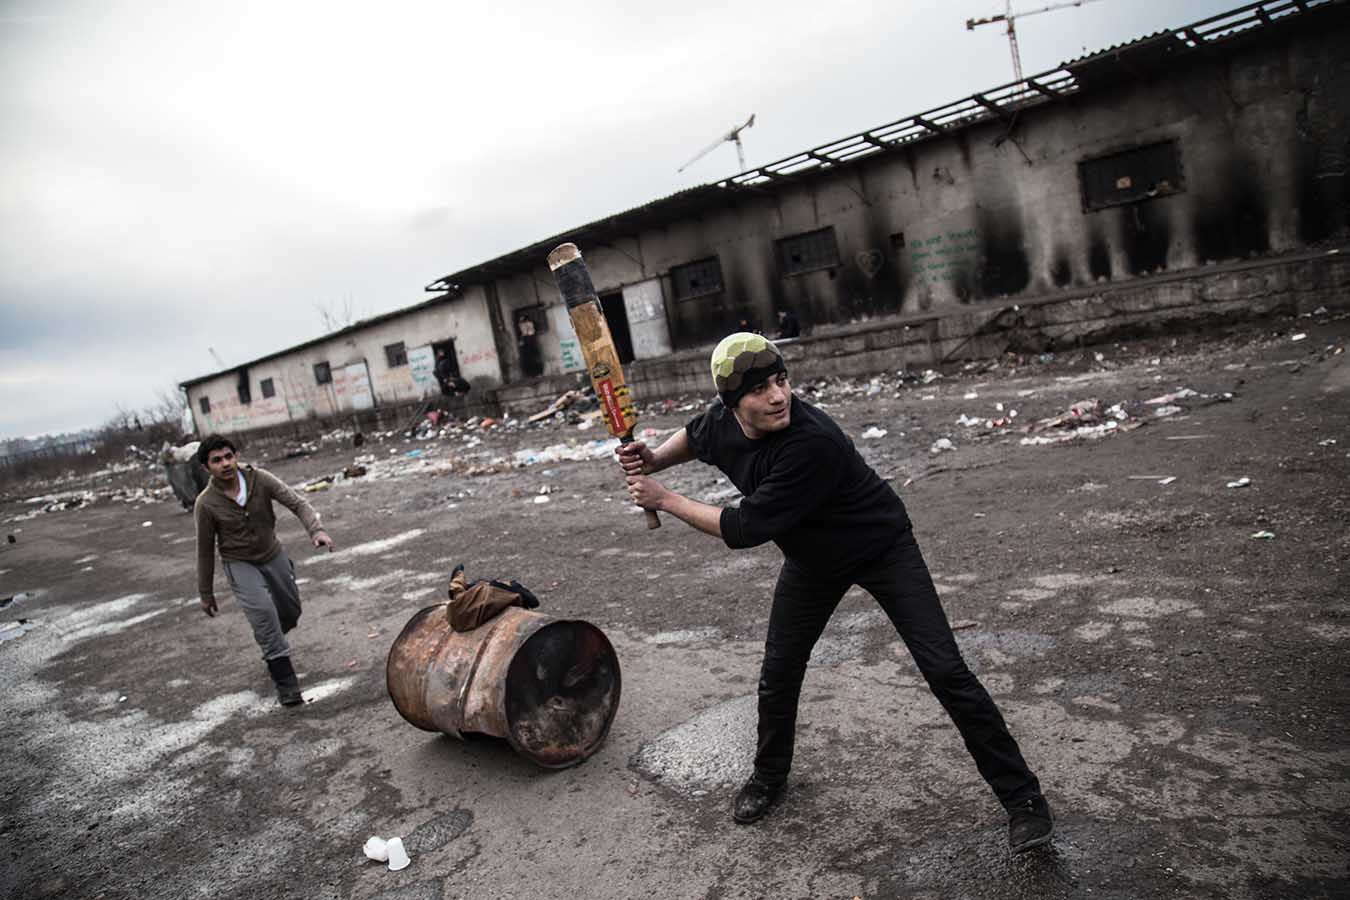 """Refugees play cricket in one of the former loading bays of the """"barracks"""", once an industrial complex, now a makeshift camp, in Beblgrade, Serbia, where almost 1,300 refugees are sleeping rough."""